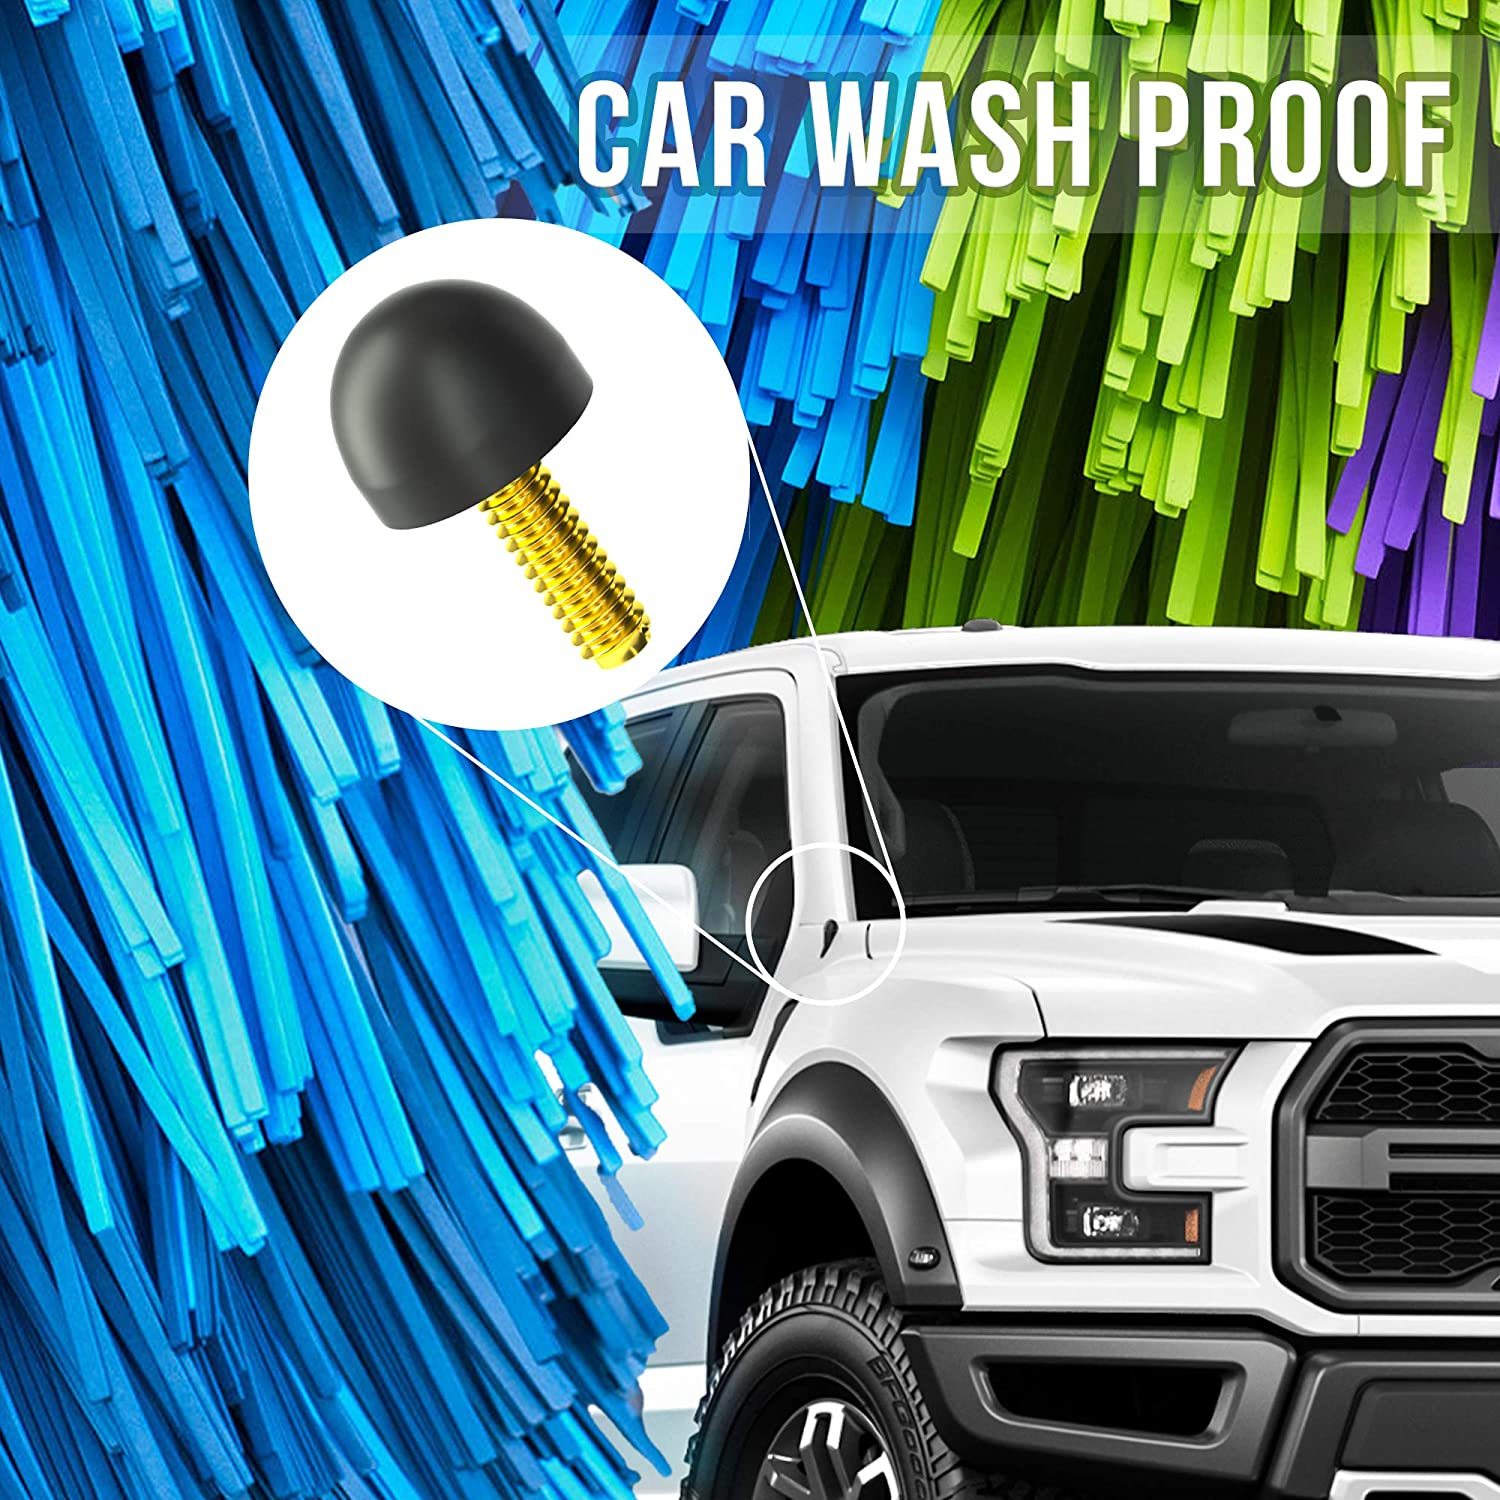 KSaAuto Antenna Delete Compatible with Ford F150 2009-2021-Car Wash Proof-Short and Compact Size